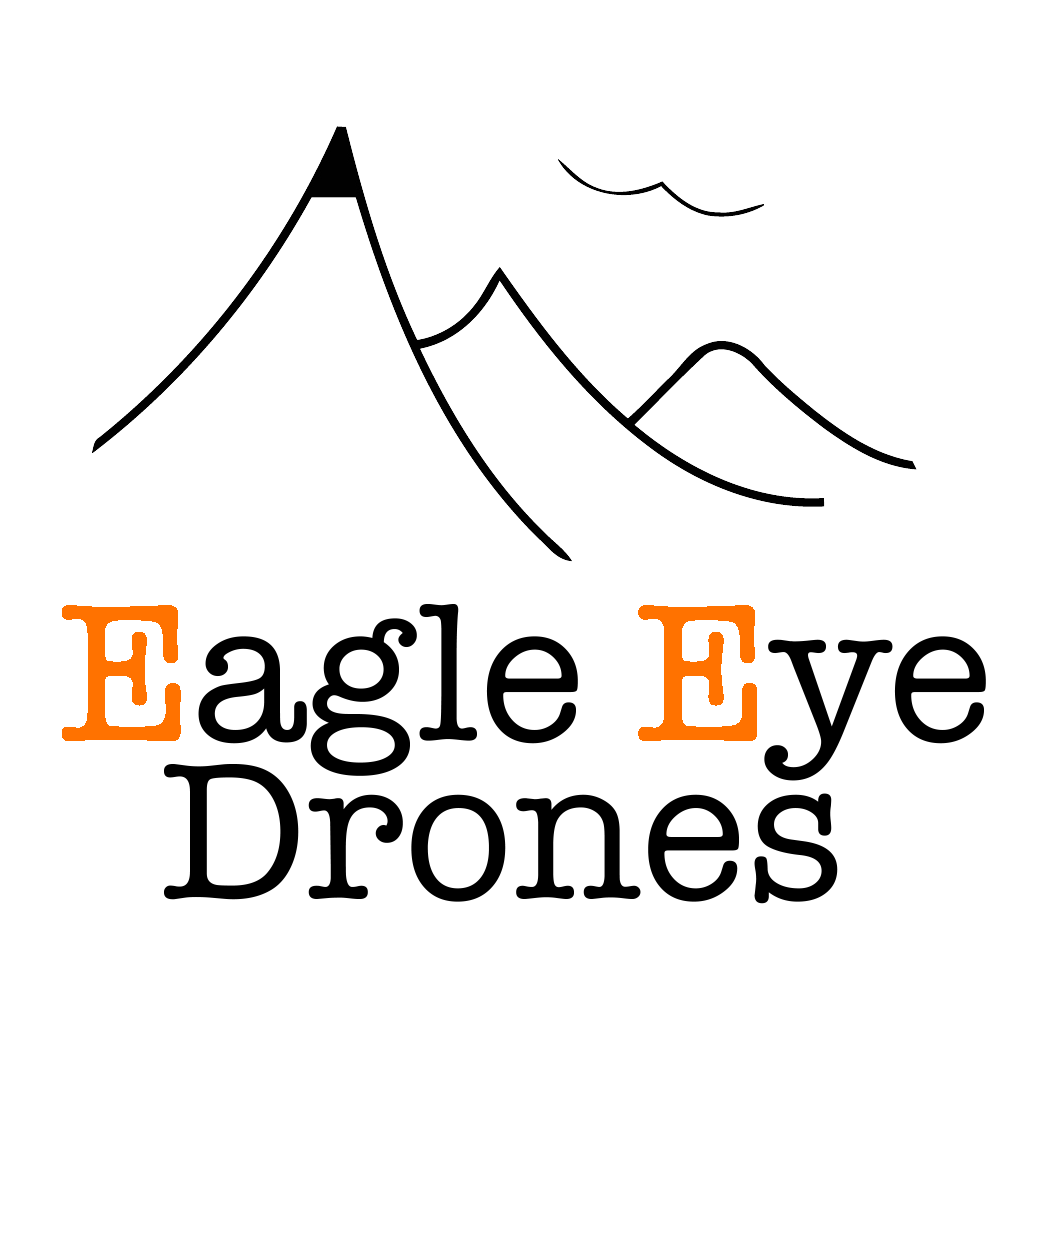 Eagle Eye Drones Ltd